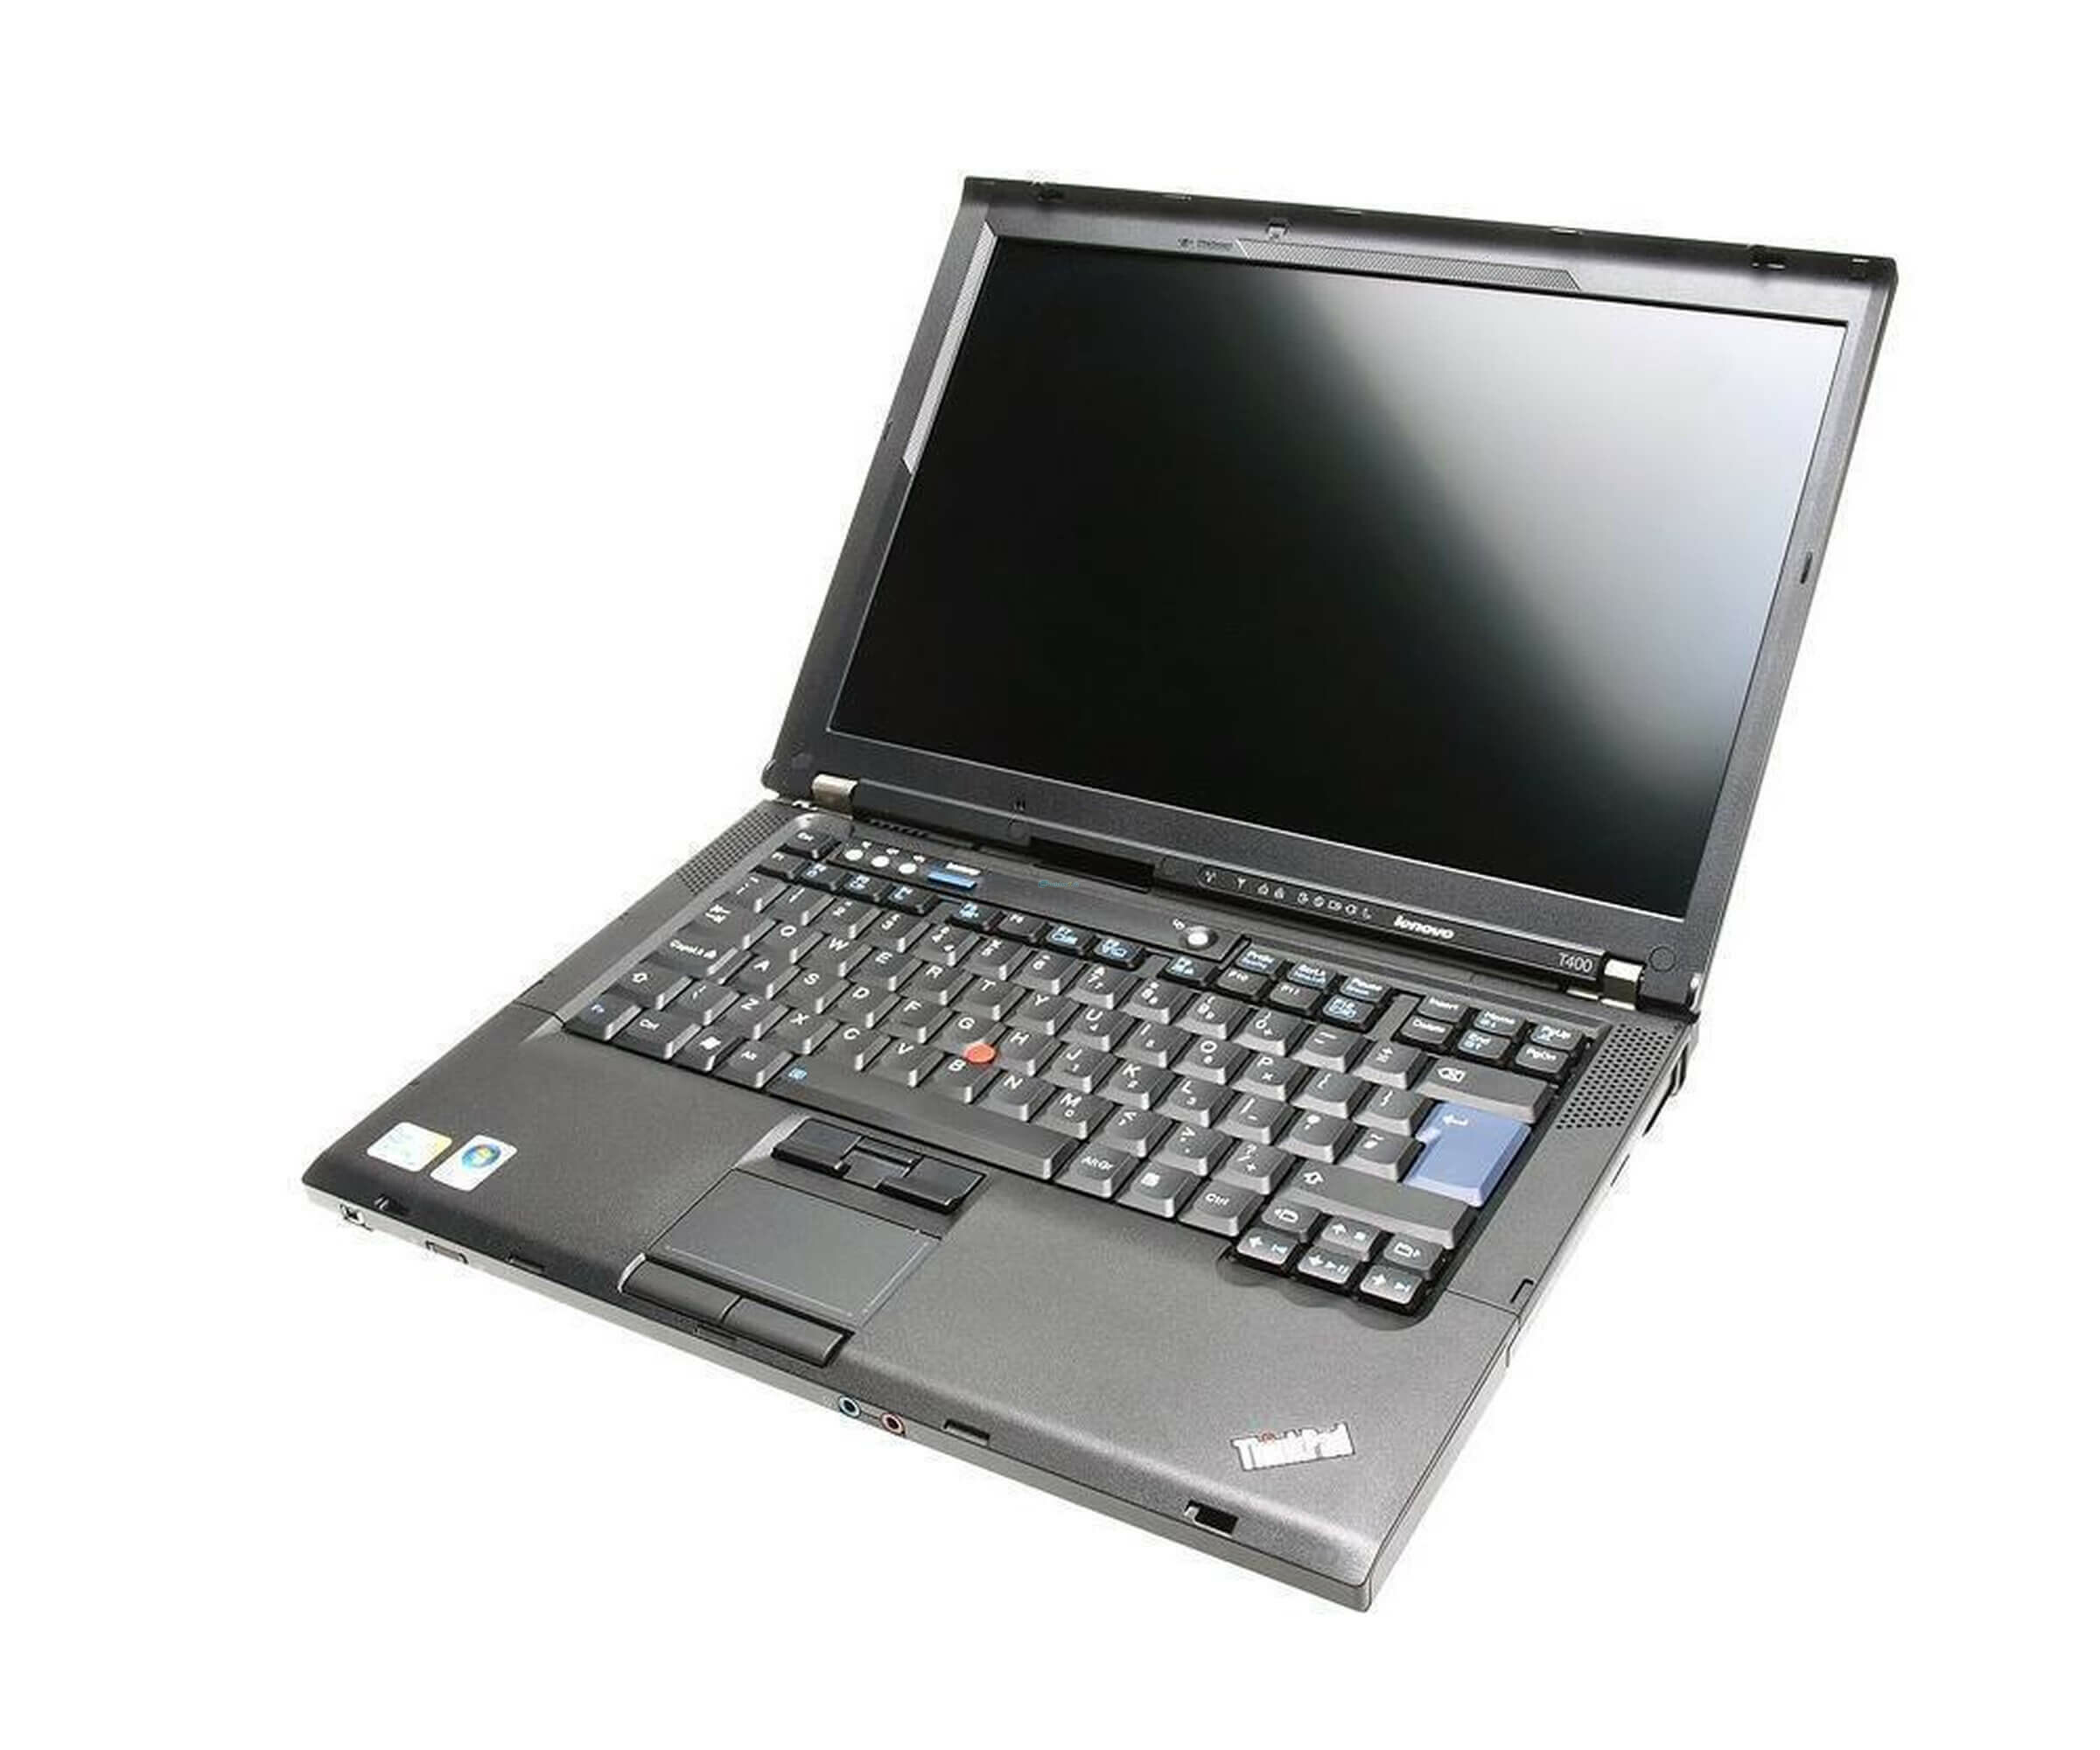 Lenovo ThinkPad T400 - C2D 2,53 GHz - RAM 2 GB - 160 GB HDD - DVDRW - Windows Vista - Tastatur: Englisch